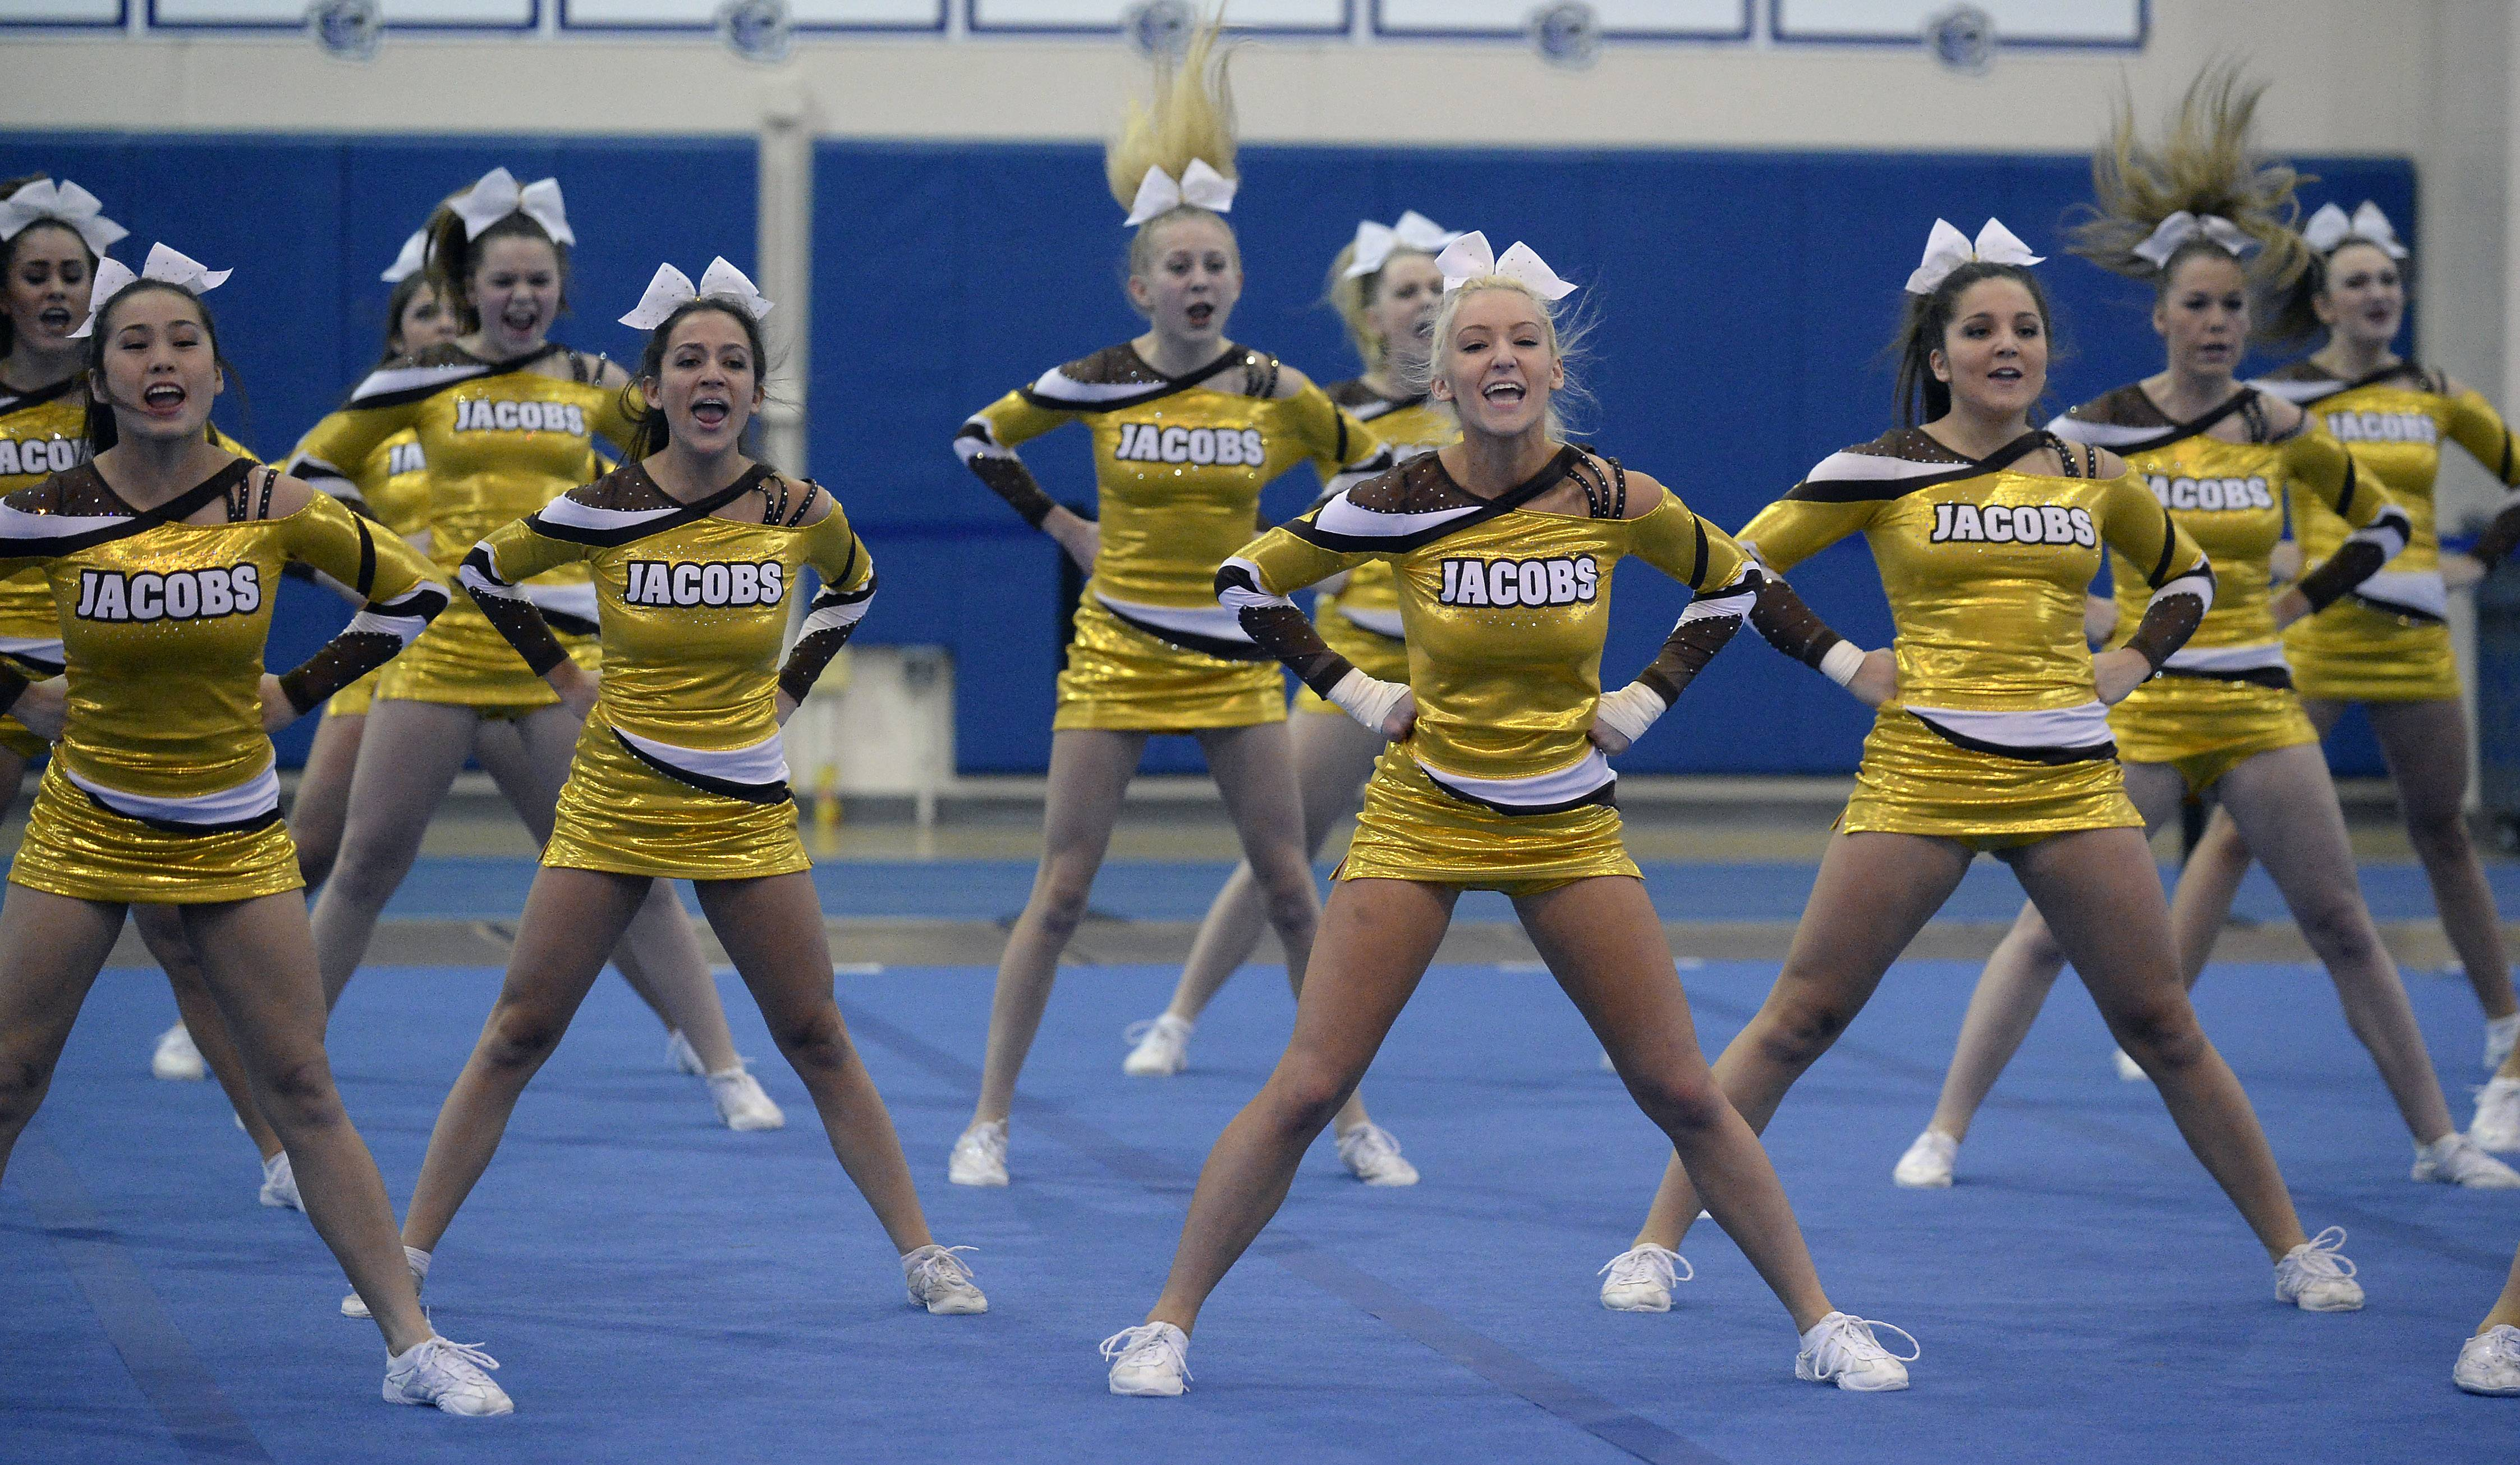 Algonquin Jacobs High School Cheerleaders Large Team  Compete In Competitive Cheerleading Sectionals